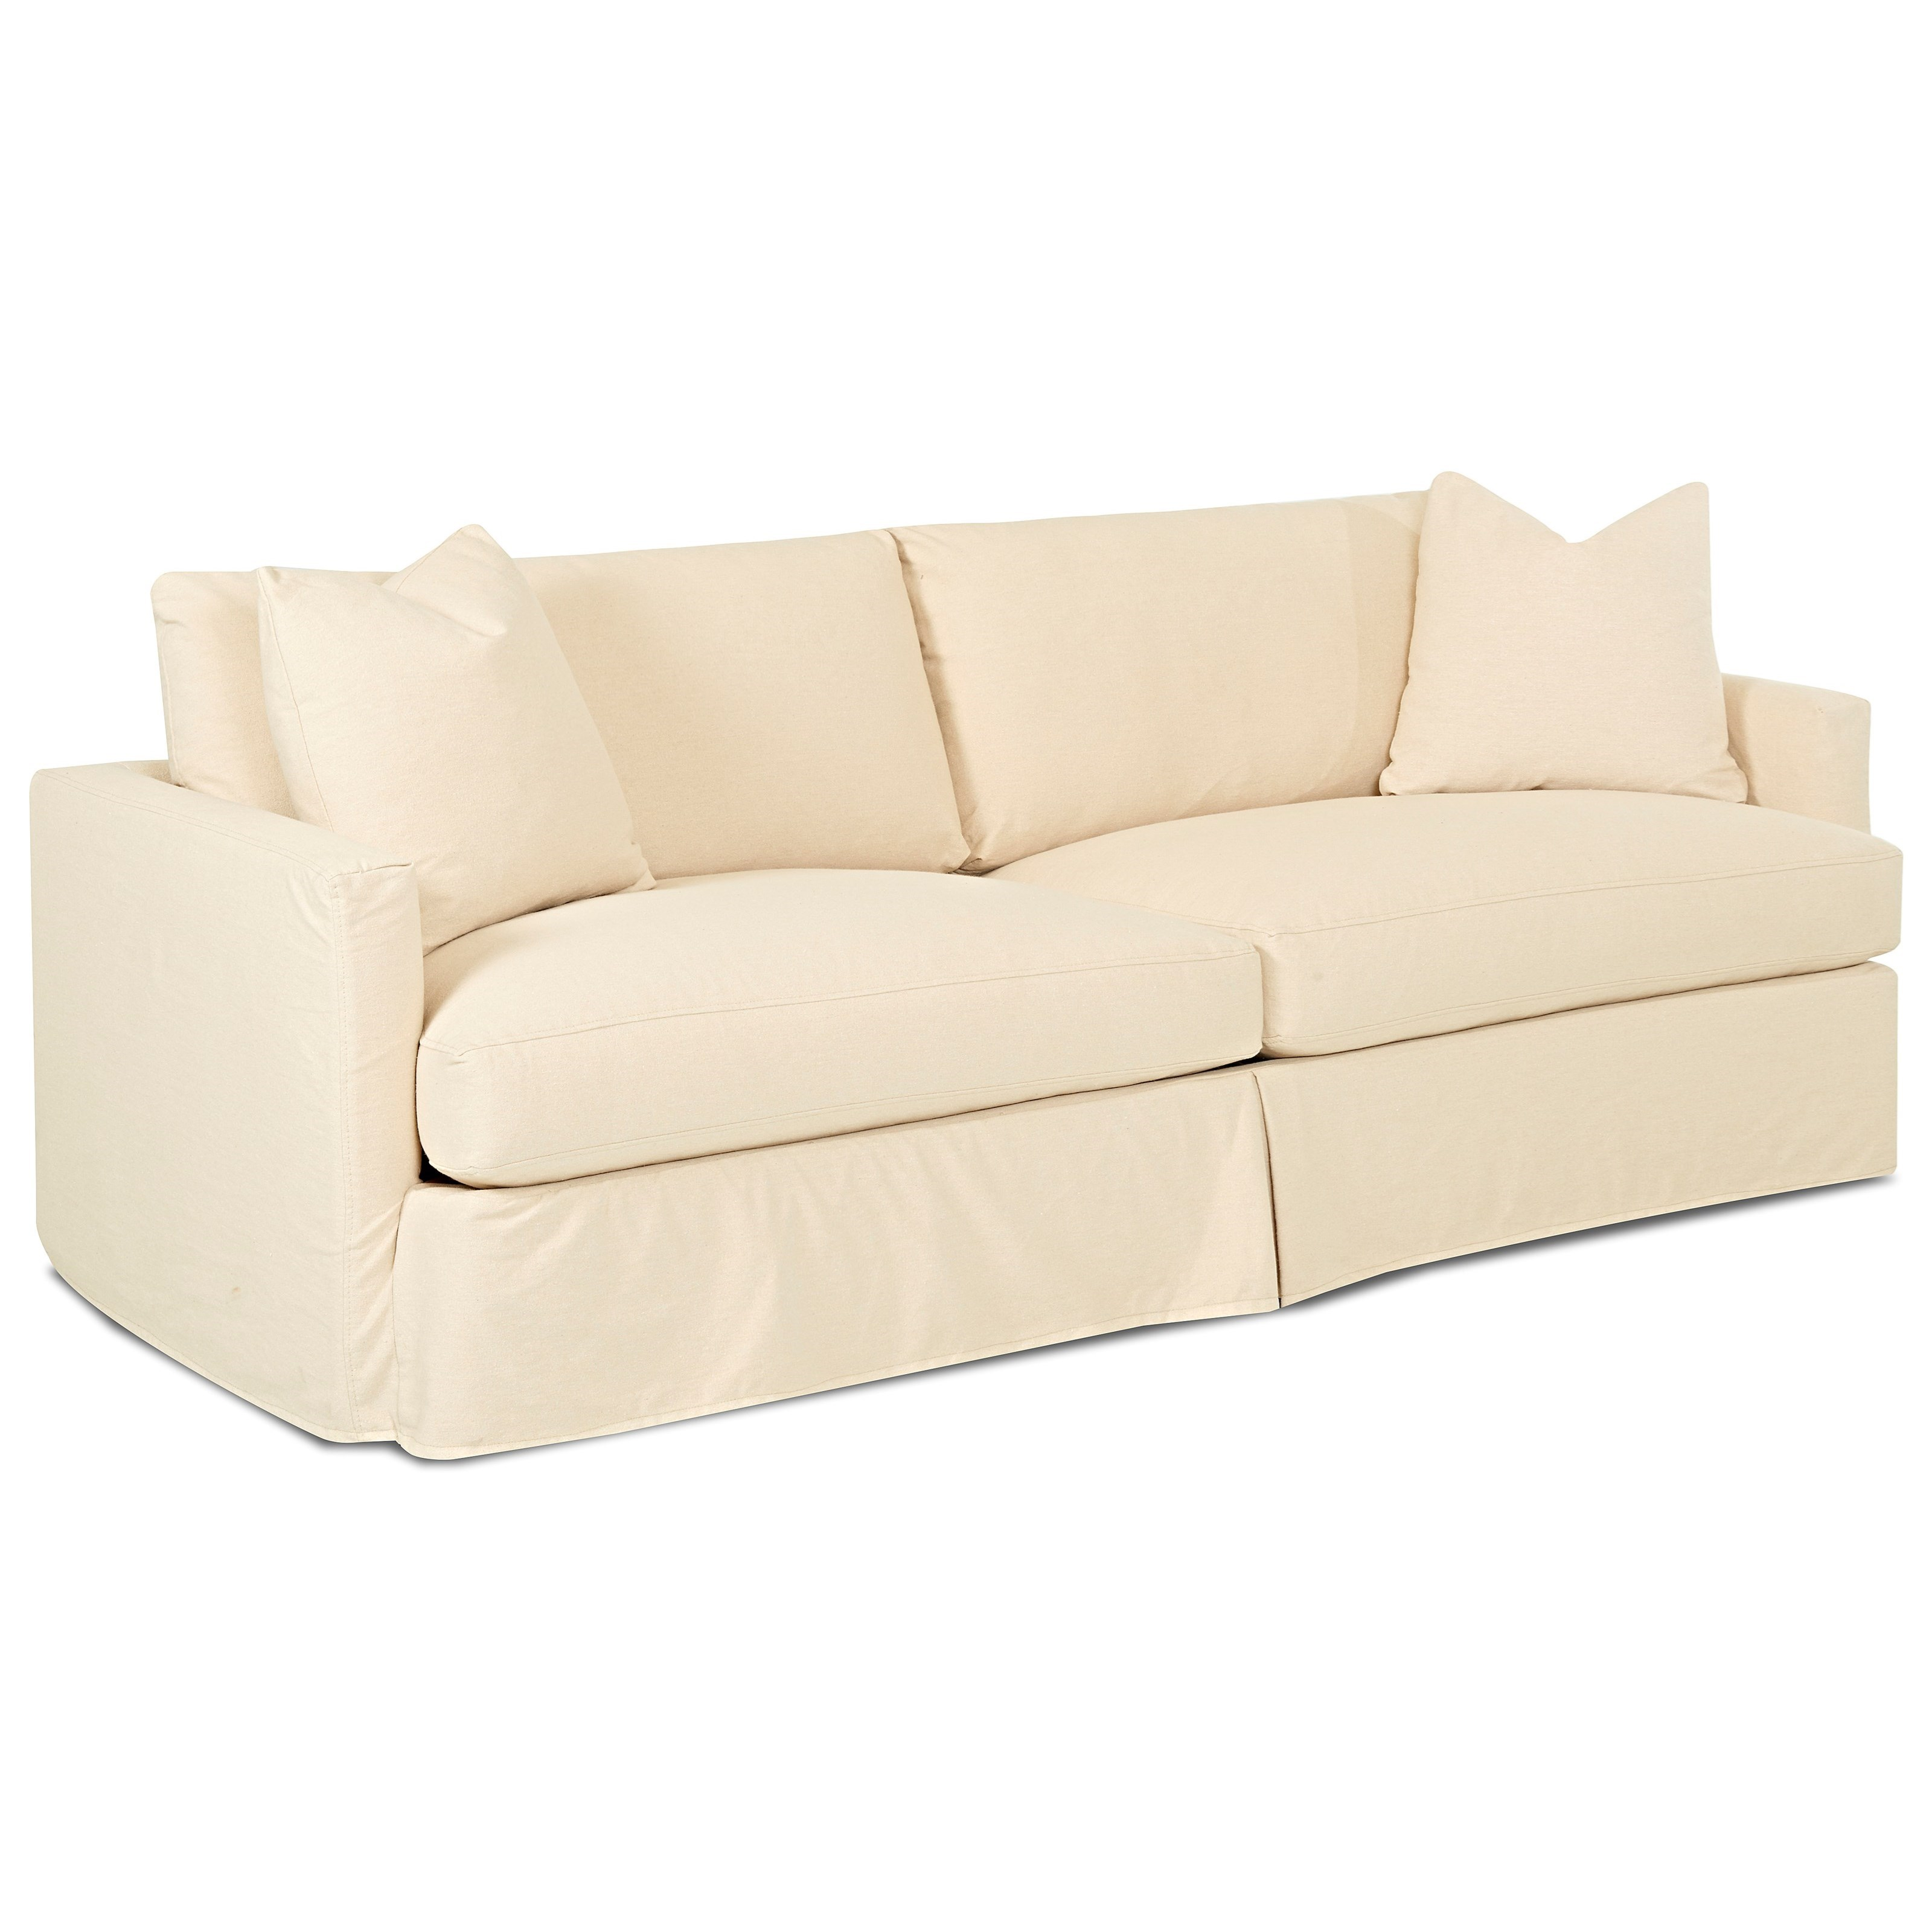 Sofa Covers Oversized: Extra Large Sofa With Slipcover By Klaussner